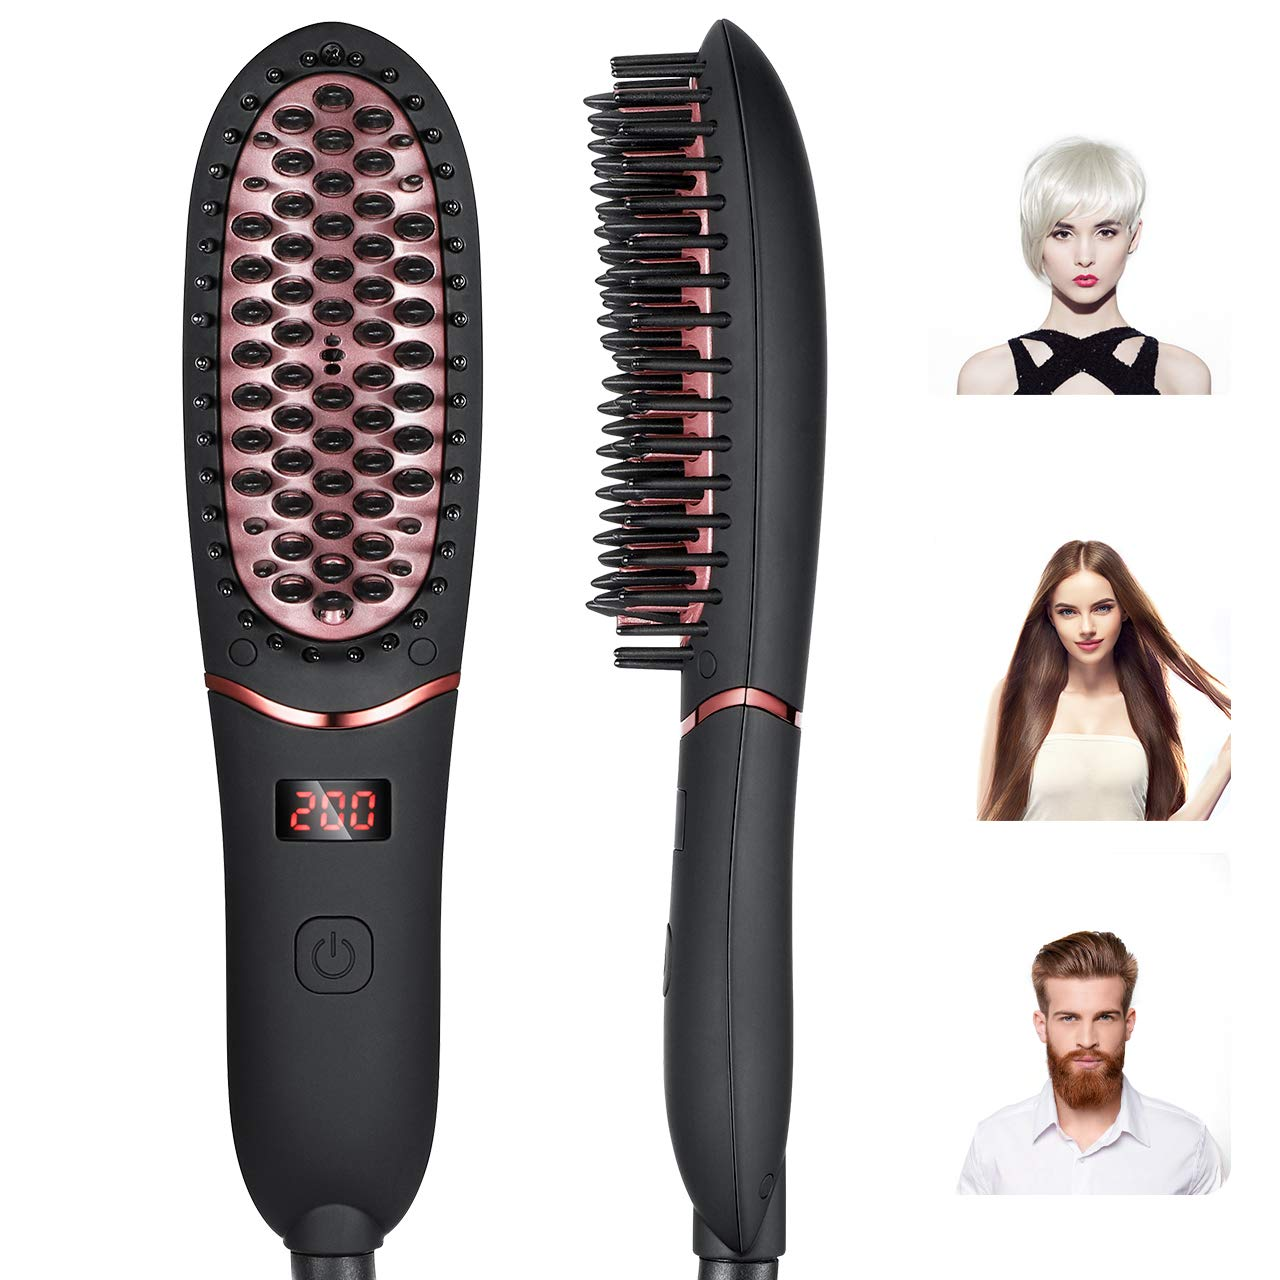 Ionic Hair Straightener Brush RIOFLY Ceramic Hair Beard Straightening Comb with 30s Fast Heating, Reduce Hair Beard Frizz, One Key Control, 5 Adjustable Temperatures for Home for Travel for Women, Men